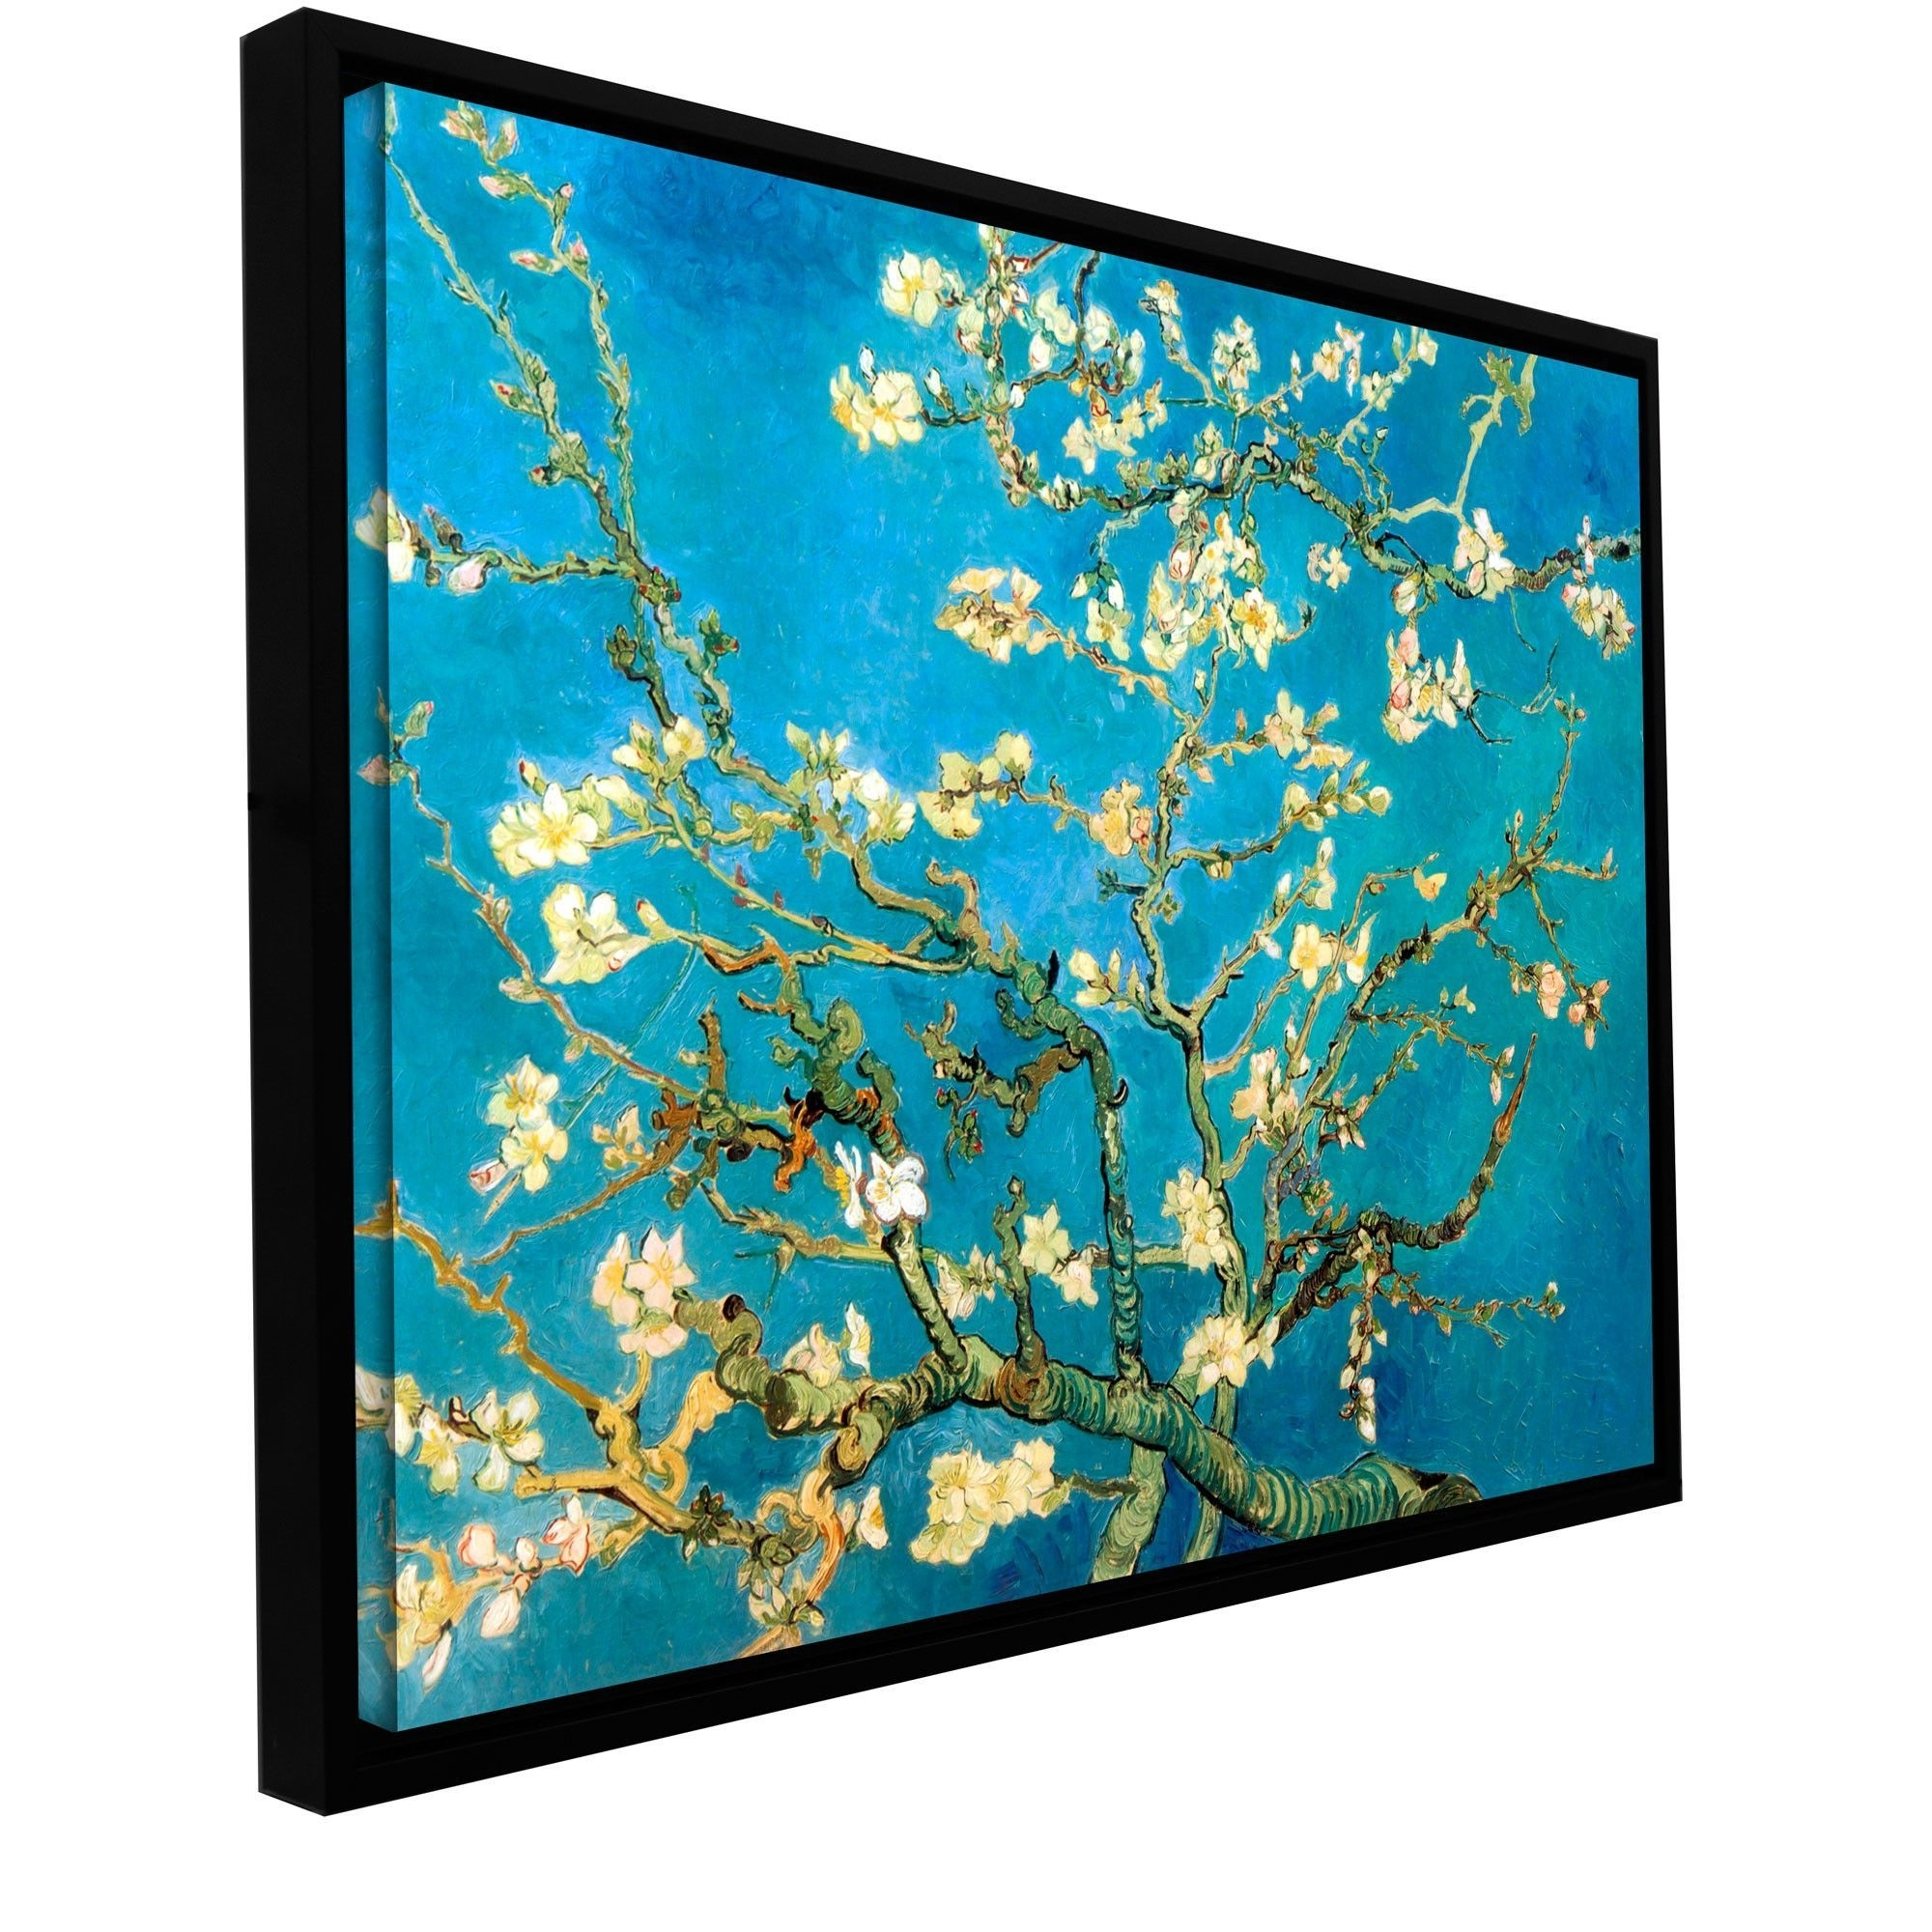 Almond Blossom'vincent Van Gogh Framed Painting Print On Pertaining To Most Up To Date Almond Blossoms Vincent Van Gogh Wall Art (View 12 of 20)